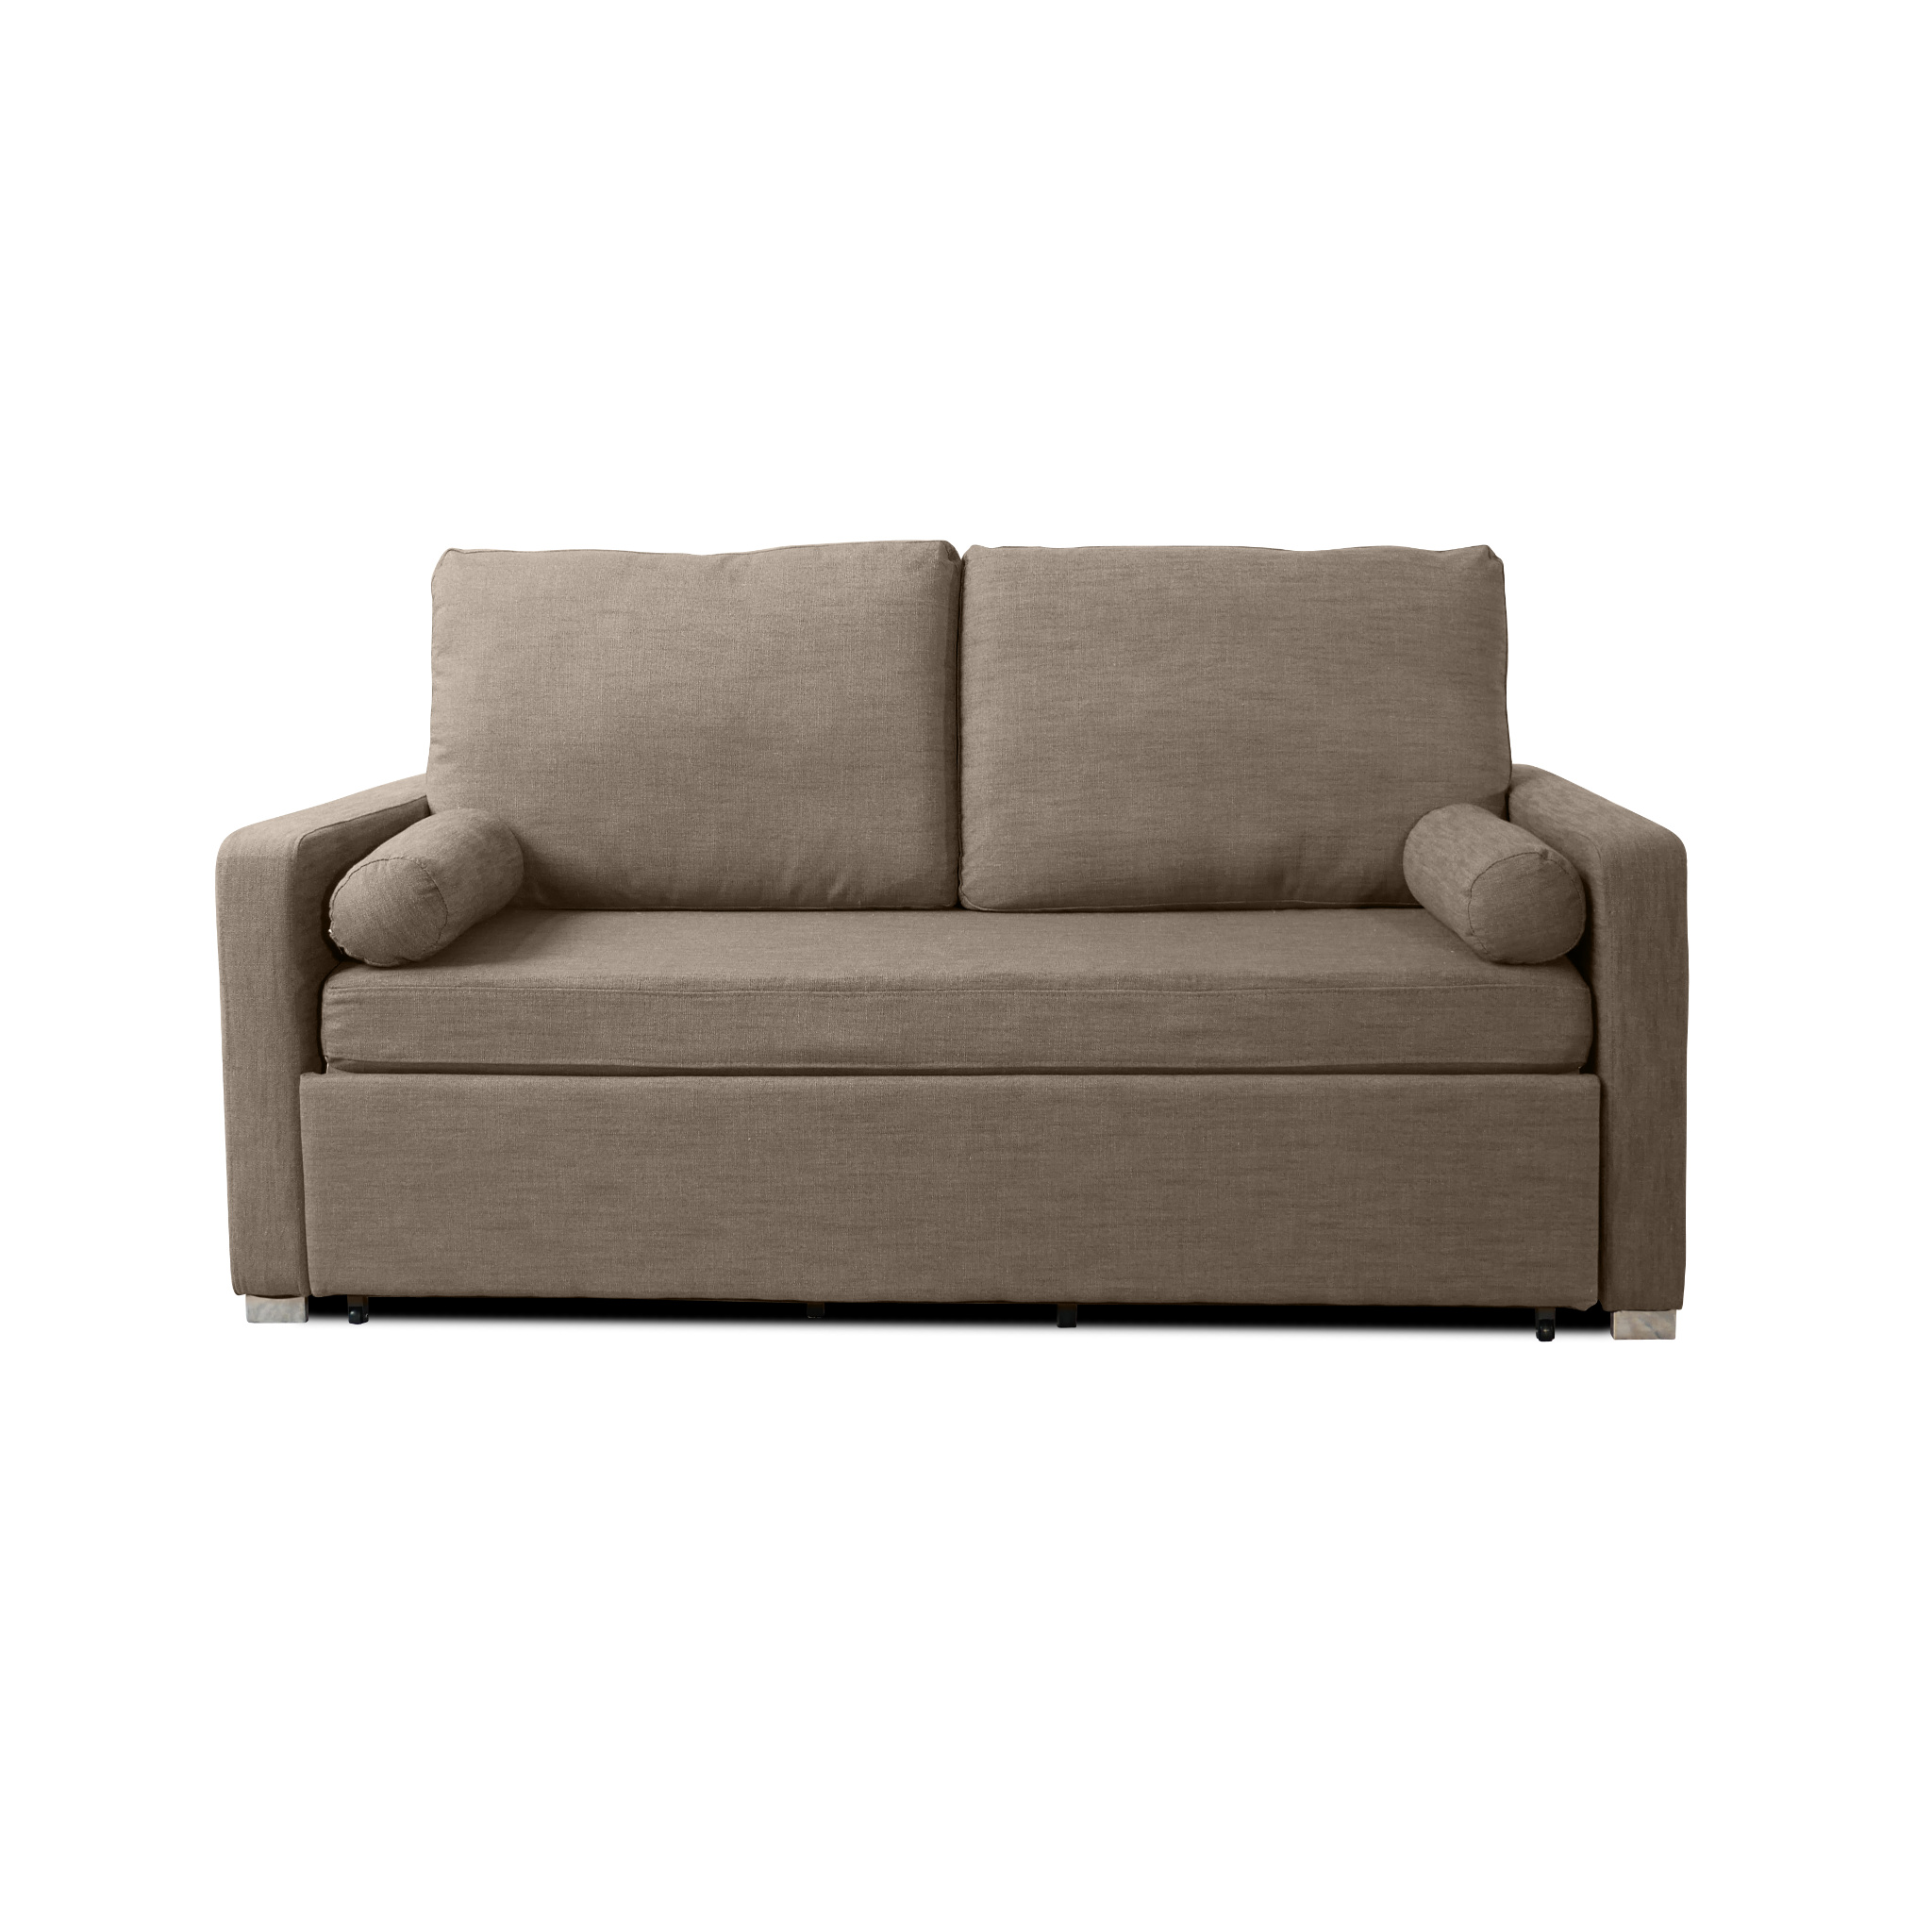 - Harmony - Queen Size Memory Foam Sofa Bed Expand Furniture